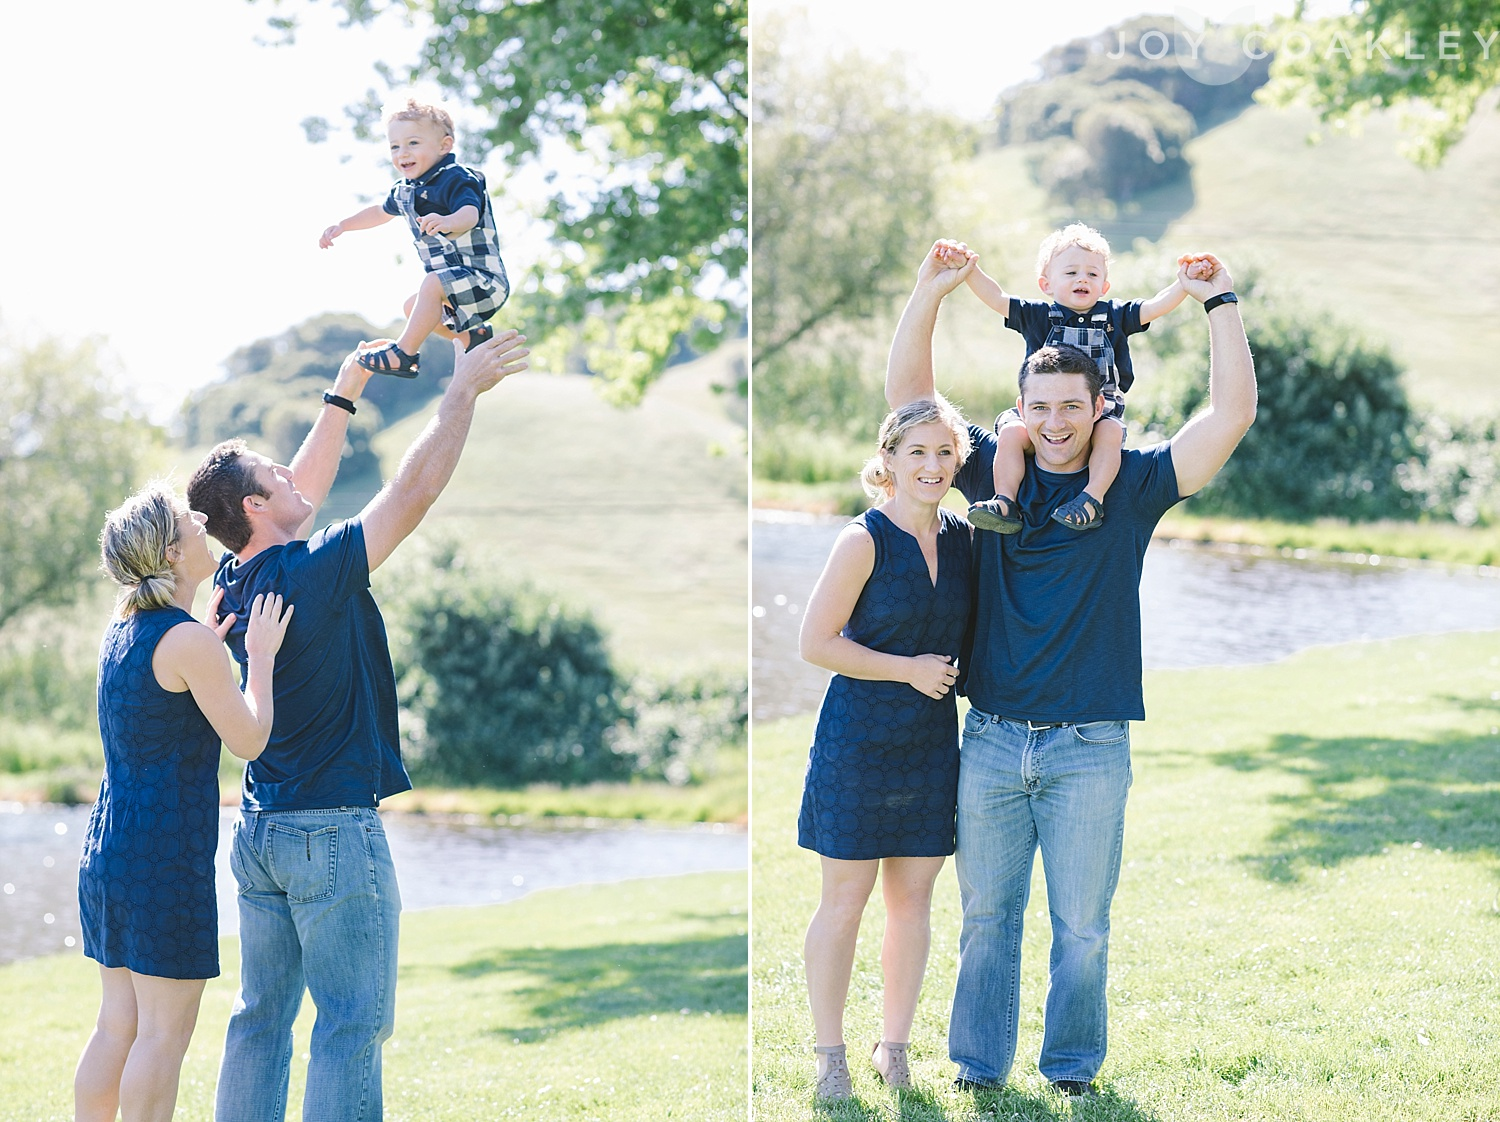 FamilyPictures2017-13_WEB.jpg